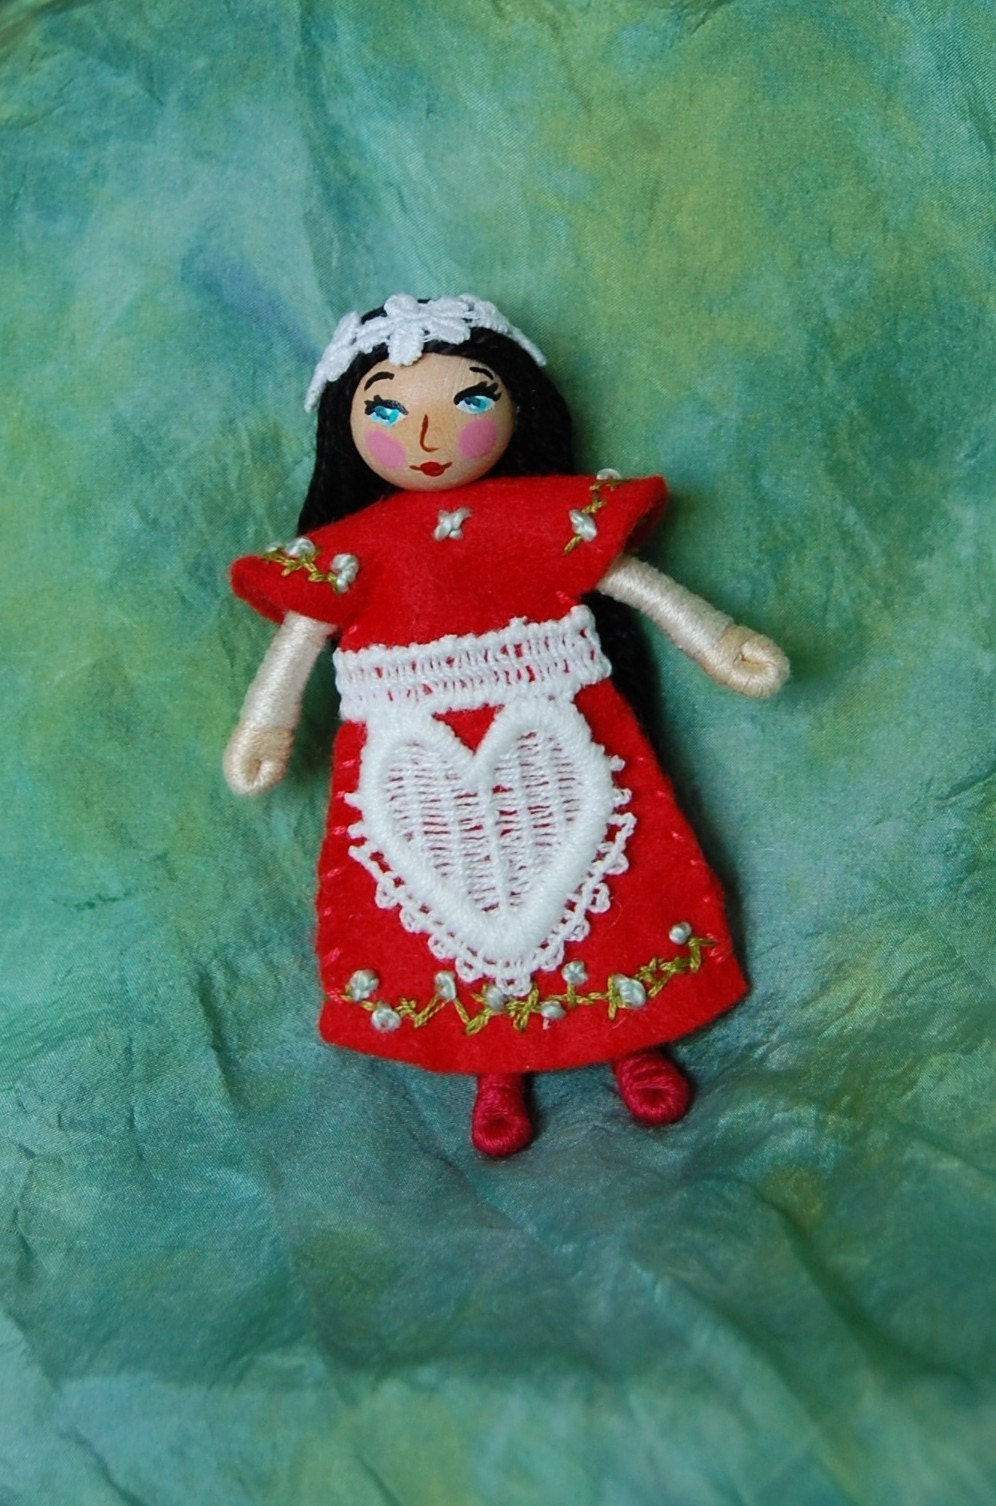 Snow White Princess Doll 4 inch tall Felt Bendy Folk